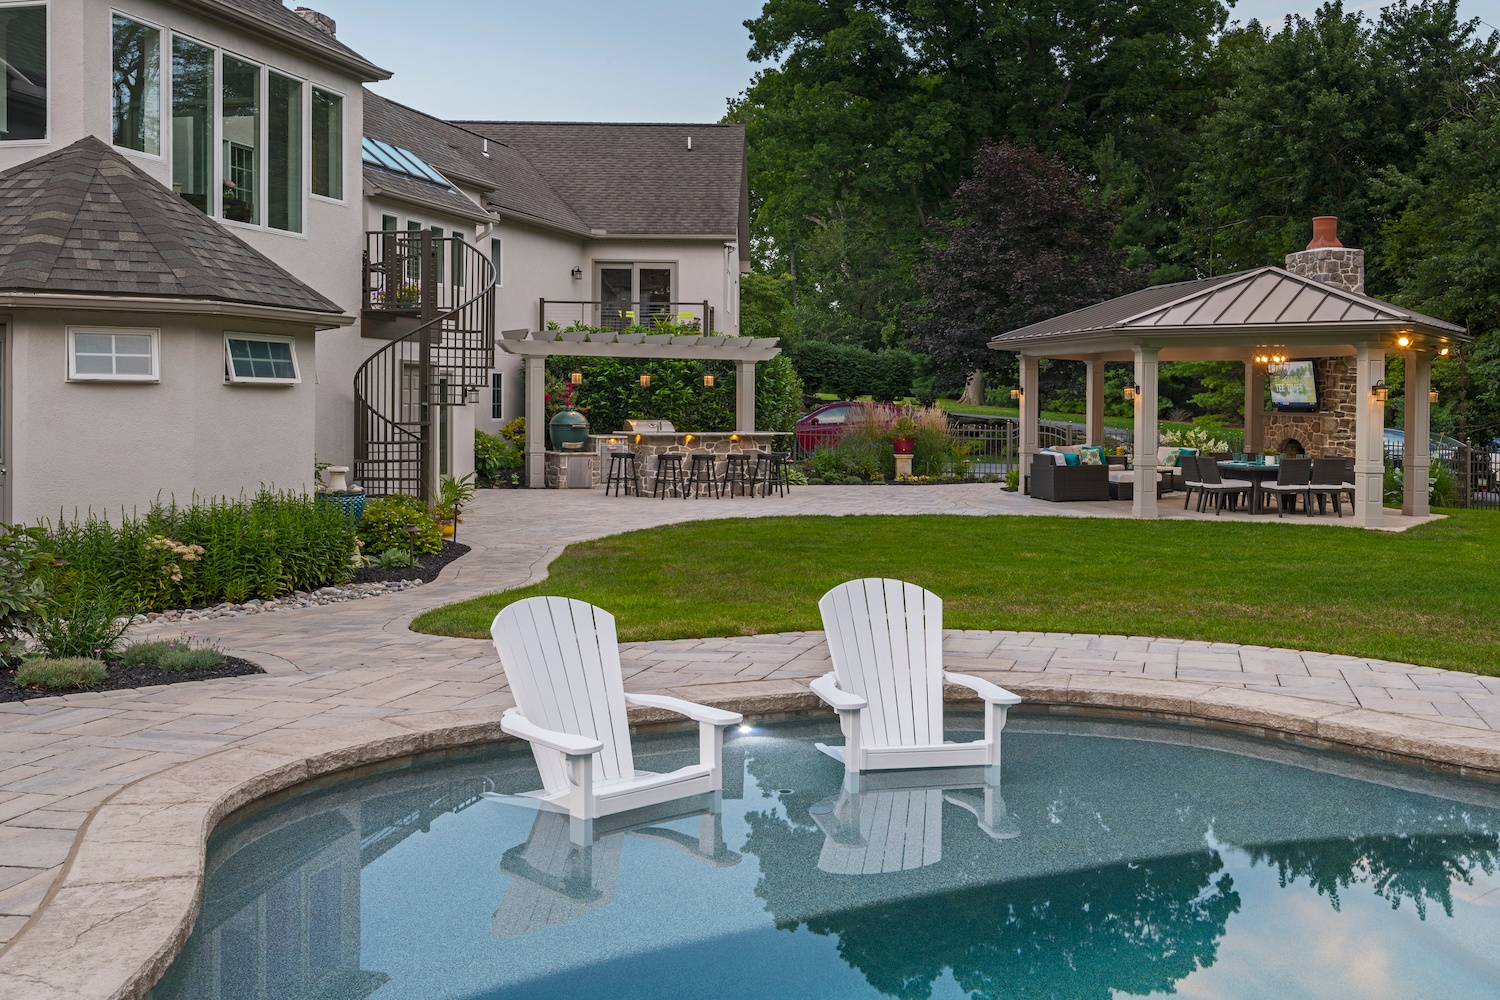 professionally designed backyard landscape in Strasburg, PA